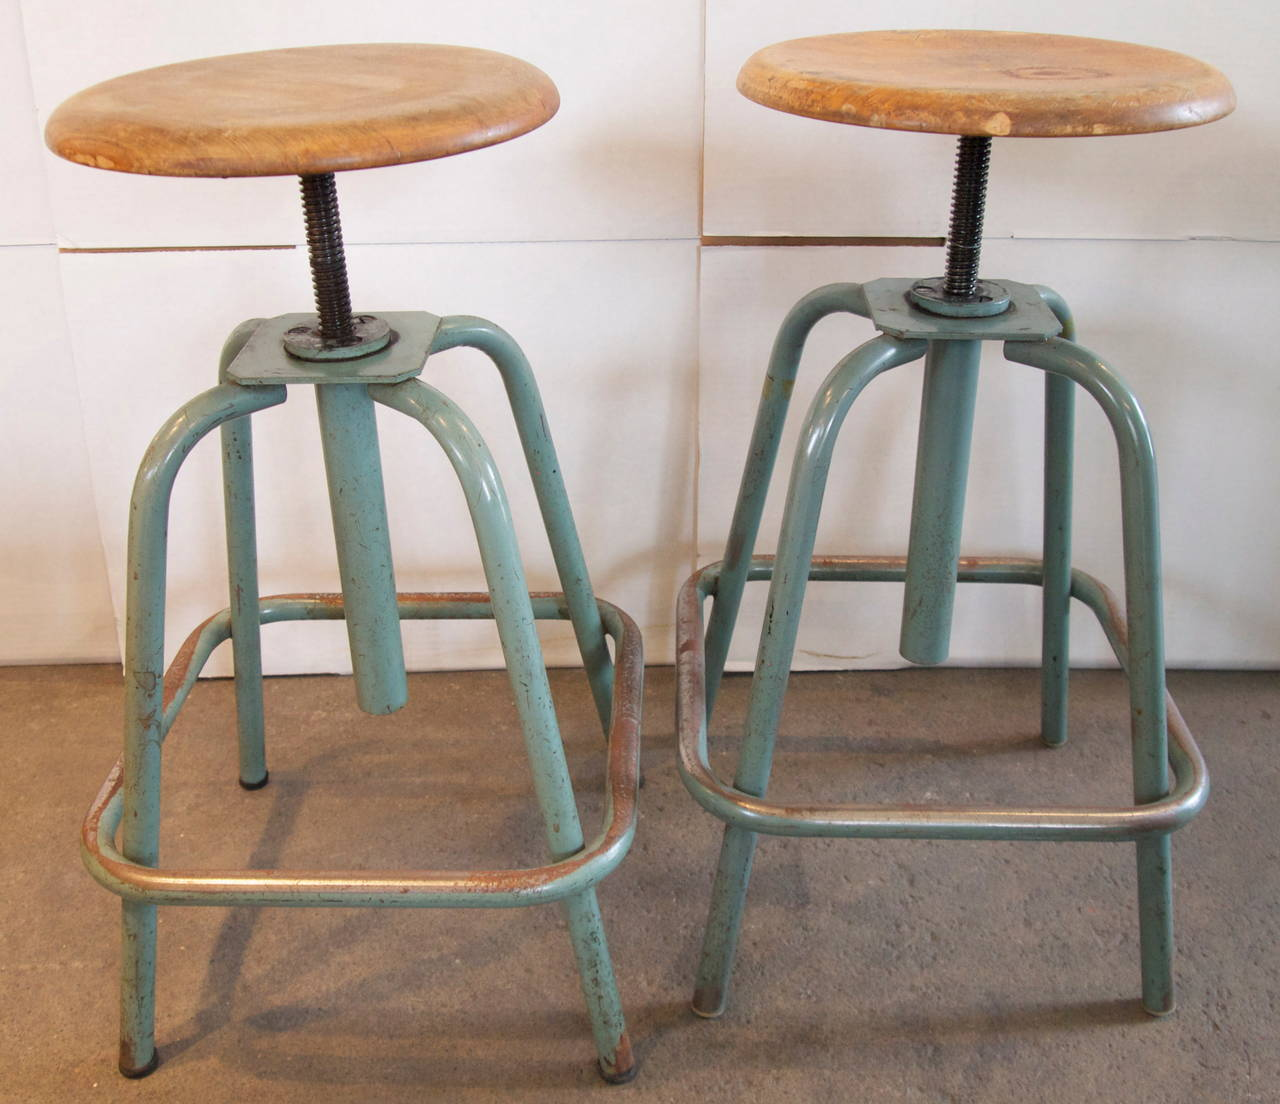 Pair of French Industrial Adjustable Stools 3 & Pair of French Industrial Adjustable Stools at 1stdibs islam-shia.org